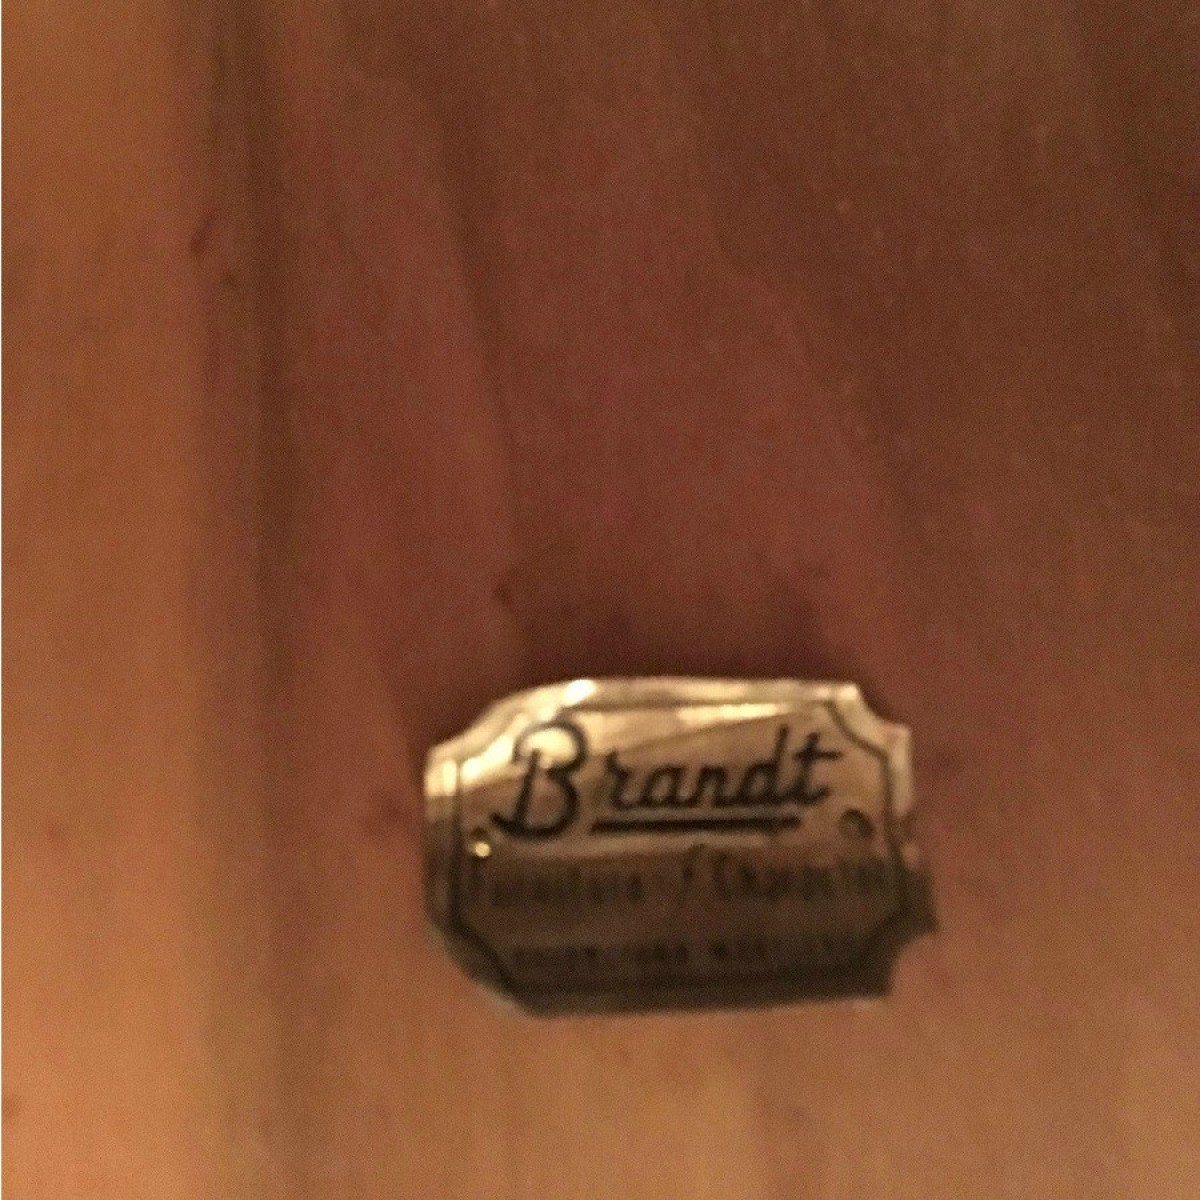 Finding The Value Of A Brandt Table